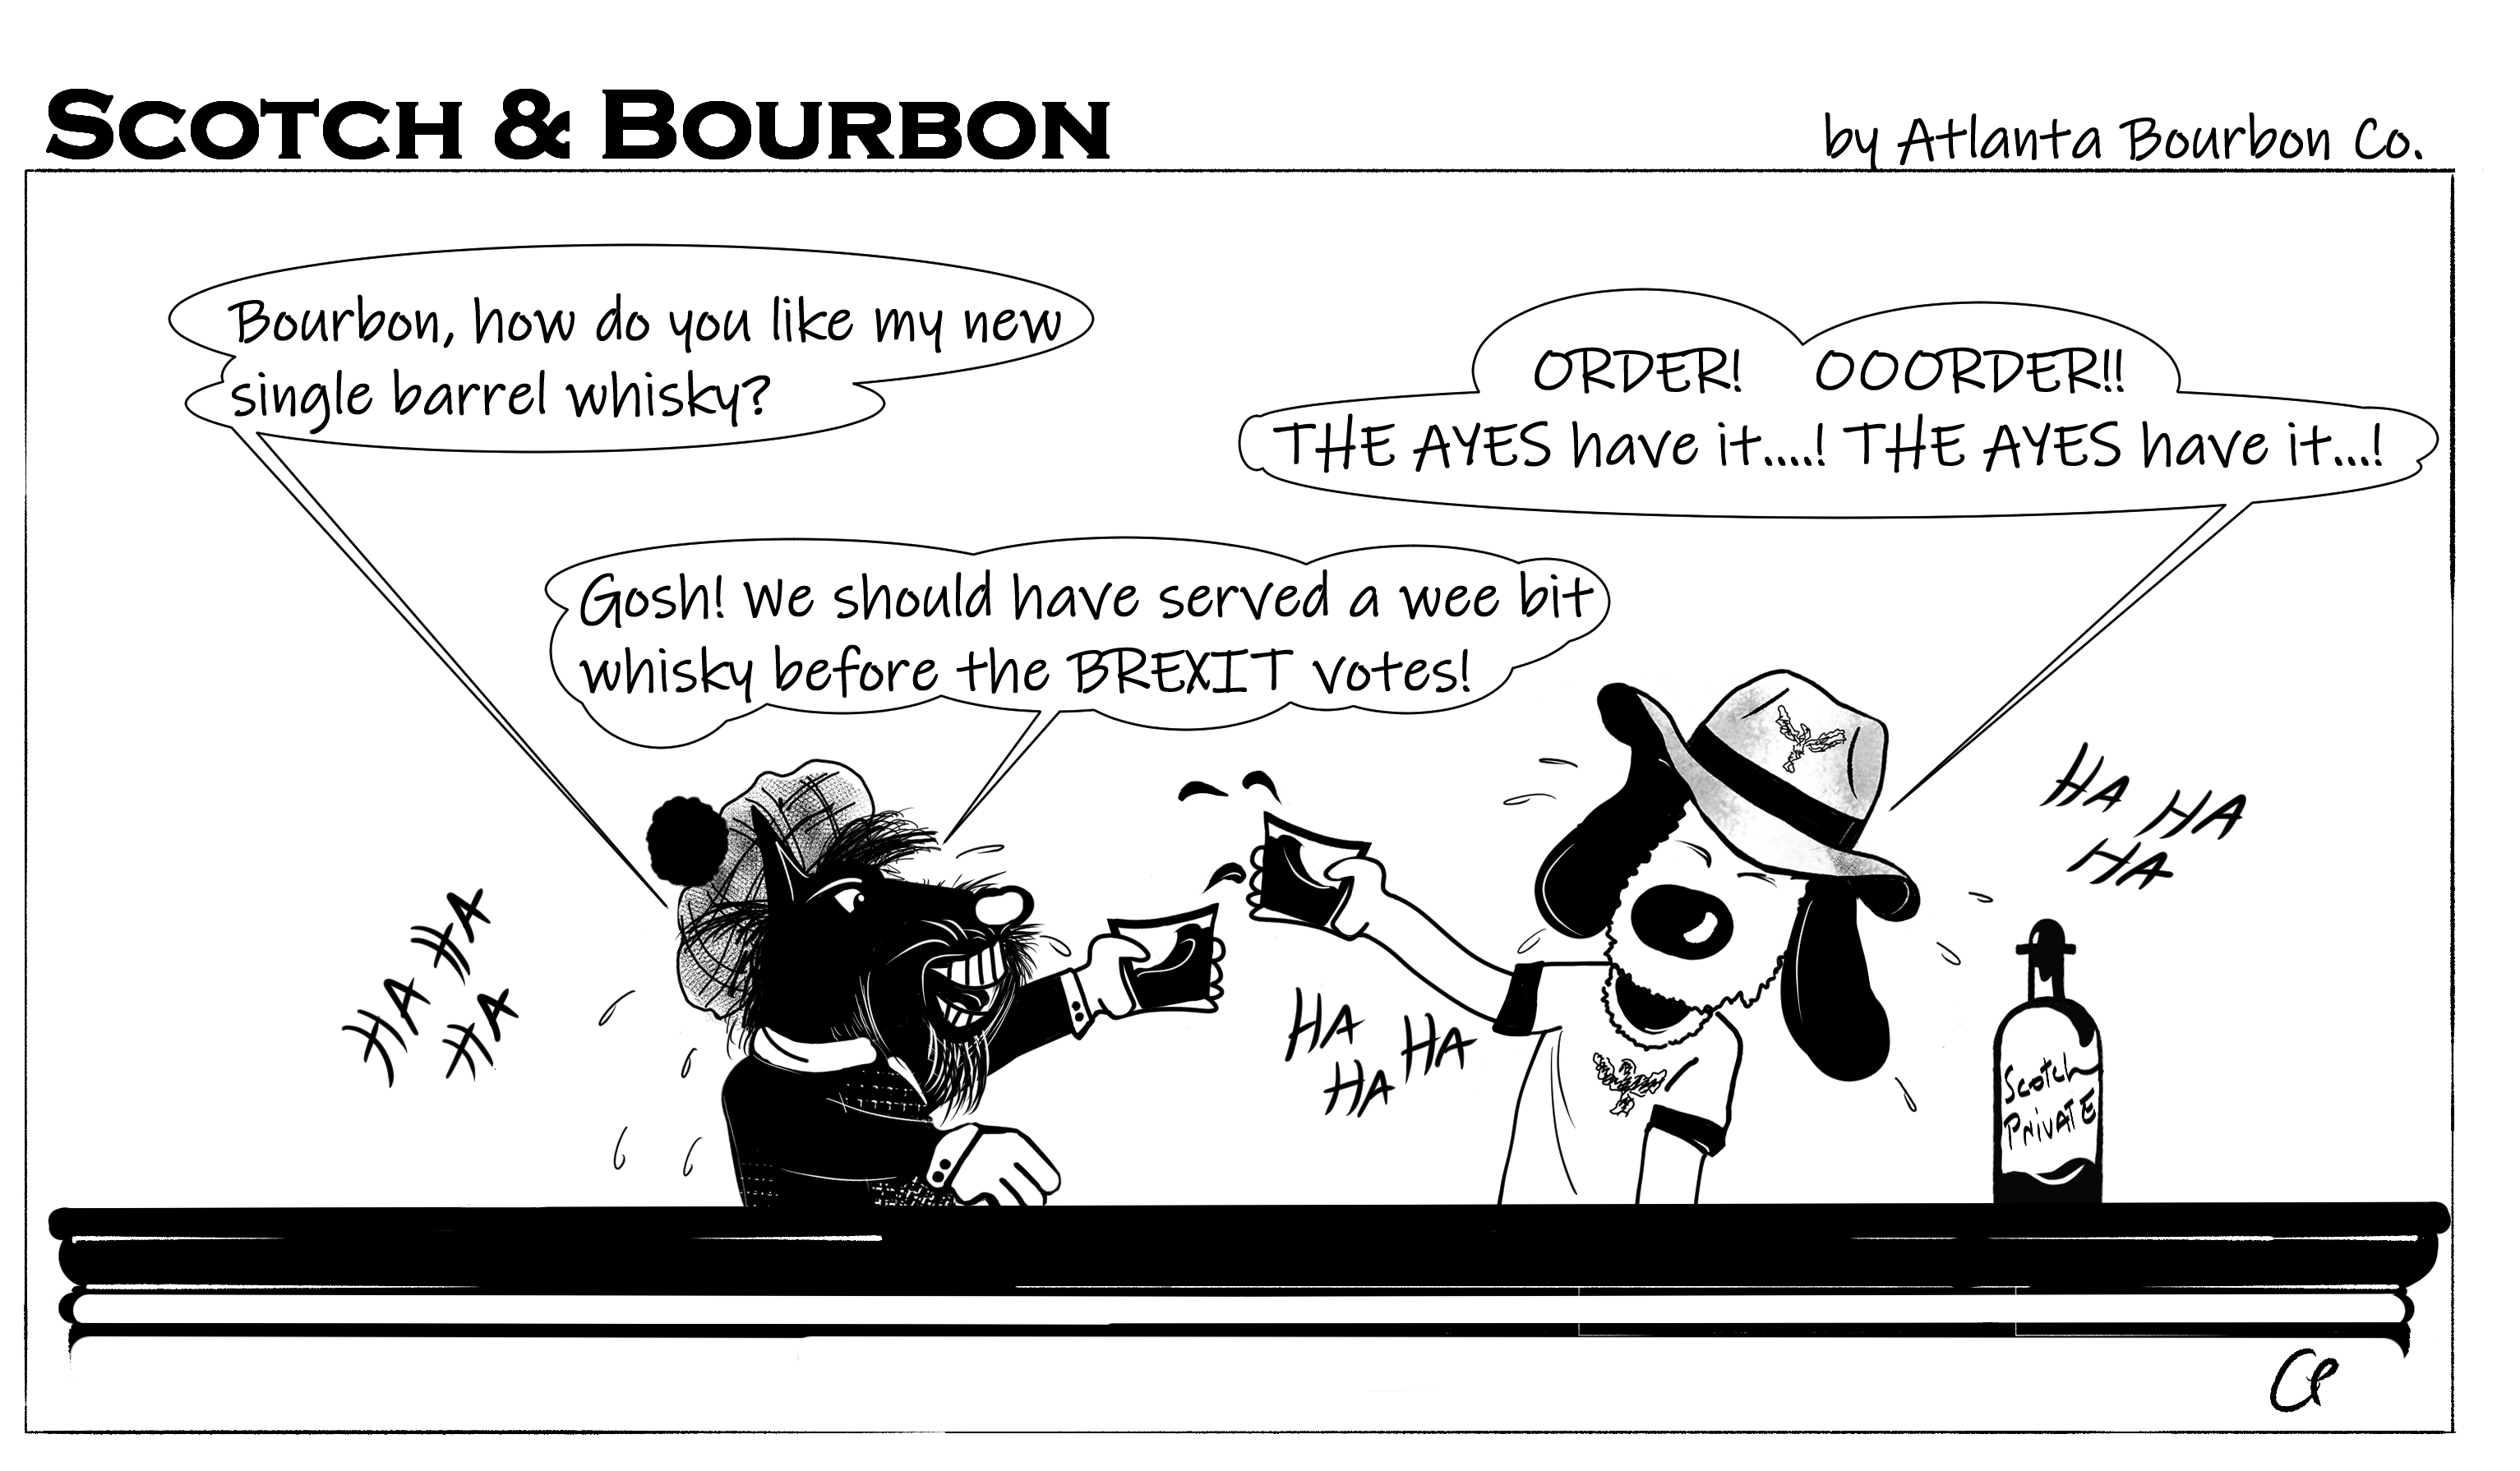 Scotch & Bourbon Cartoons: OORDER! OOOORDER! #7